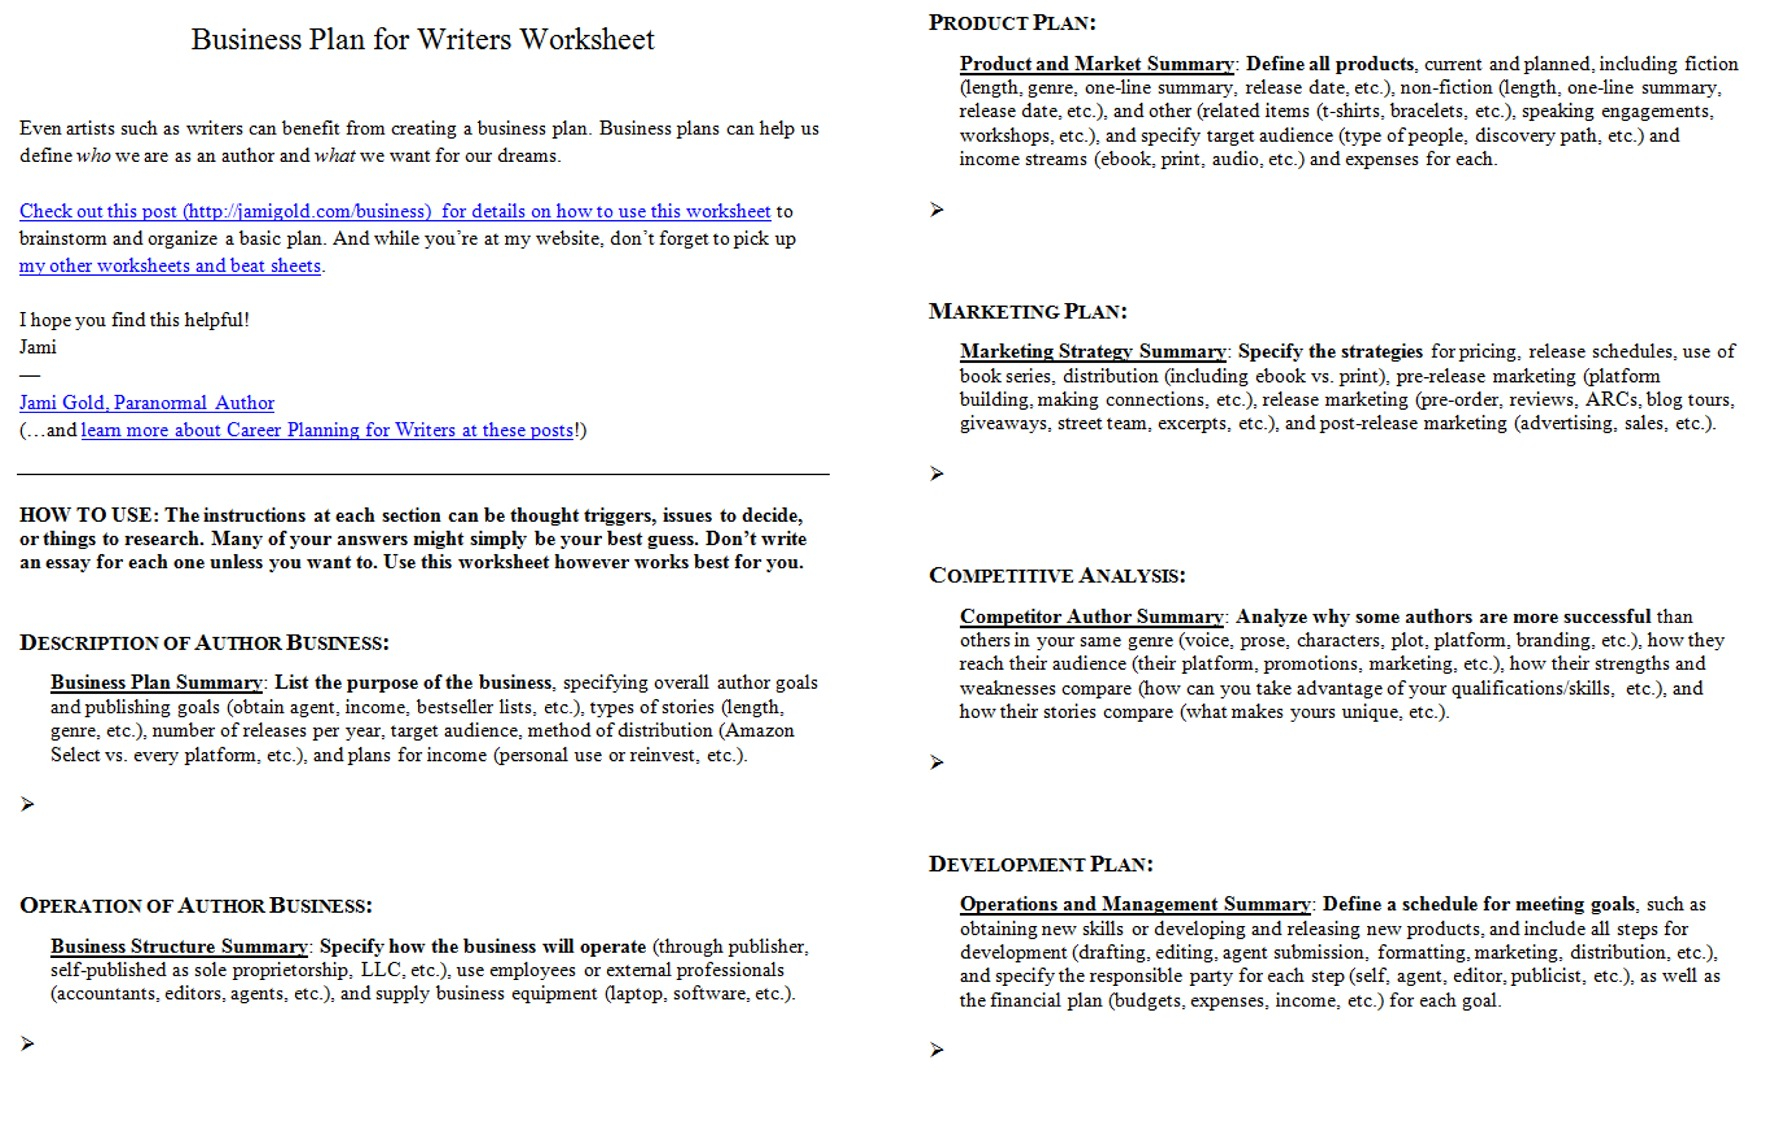 Proatmealus  Winsome Worksheets For Writers  Jami Gold Paranormal Author With Engaging Screen Shot Of Both Pages Of The Business Plan For Writers Worksheet With Amazing Adverb Worksheets Nd Grade Also Letters Worksheets In Addition Chapter  Protein Synthesis Worksheet And Checking Account Worksheets For Students As Well As Telling Time To The  Minutes Worksheets Additionally Z Angles Worksheet From Jamigoldcom With Proatmealus  Engaging Worksheets For Writers  Jami Gold Paranormal Author With Amazing Screen Shot Of Both Pages Of The Business Plan For Writers Worksheet And Winsome Adverb Worksheets Nd Grade Also Letters Worksheets In Addition Chapter  Protein Synthesis Worksheet From Jamigoldcom